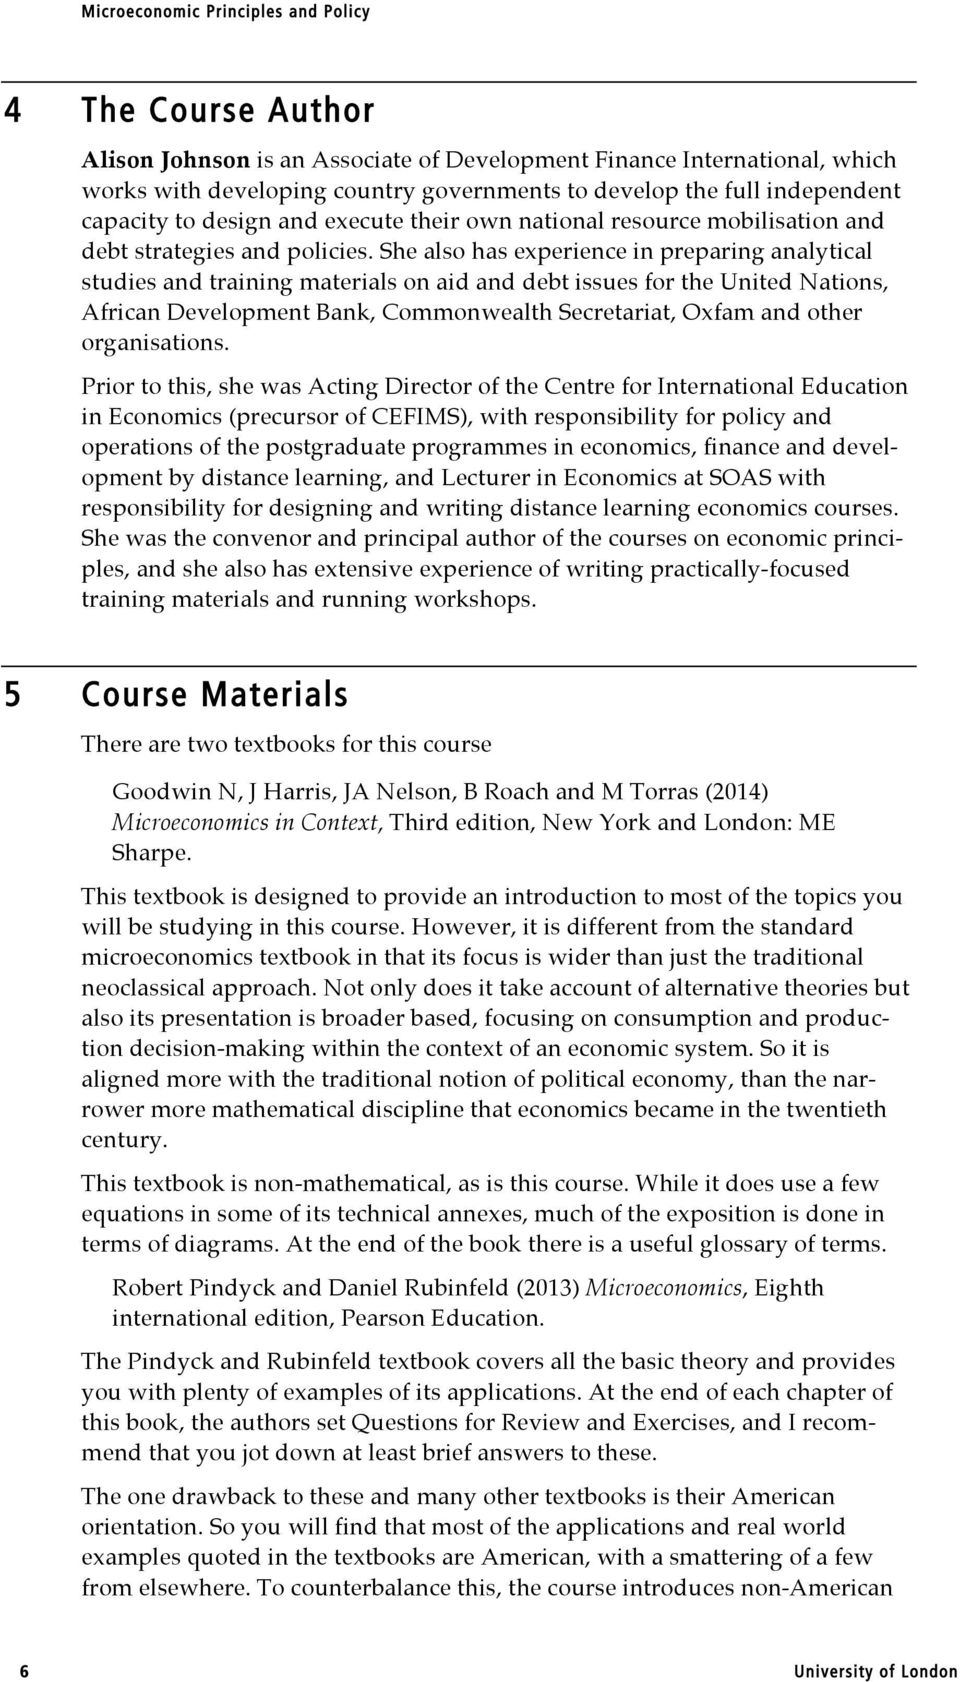 microeconomic policy examples